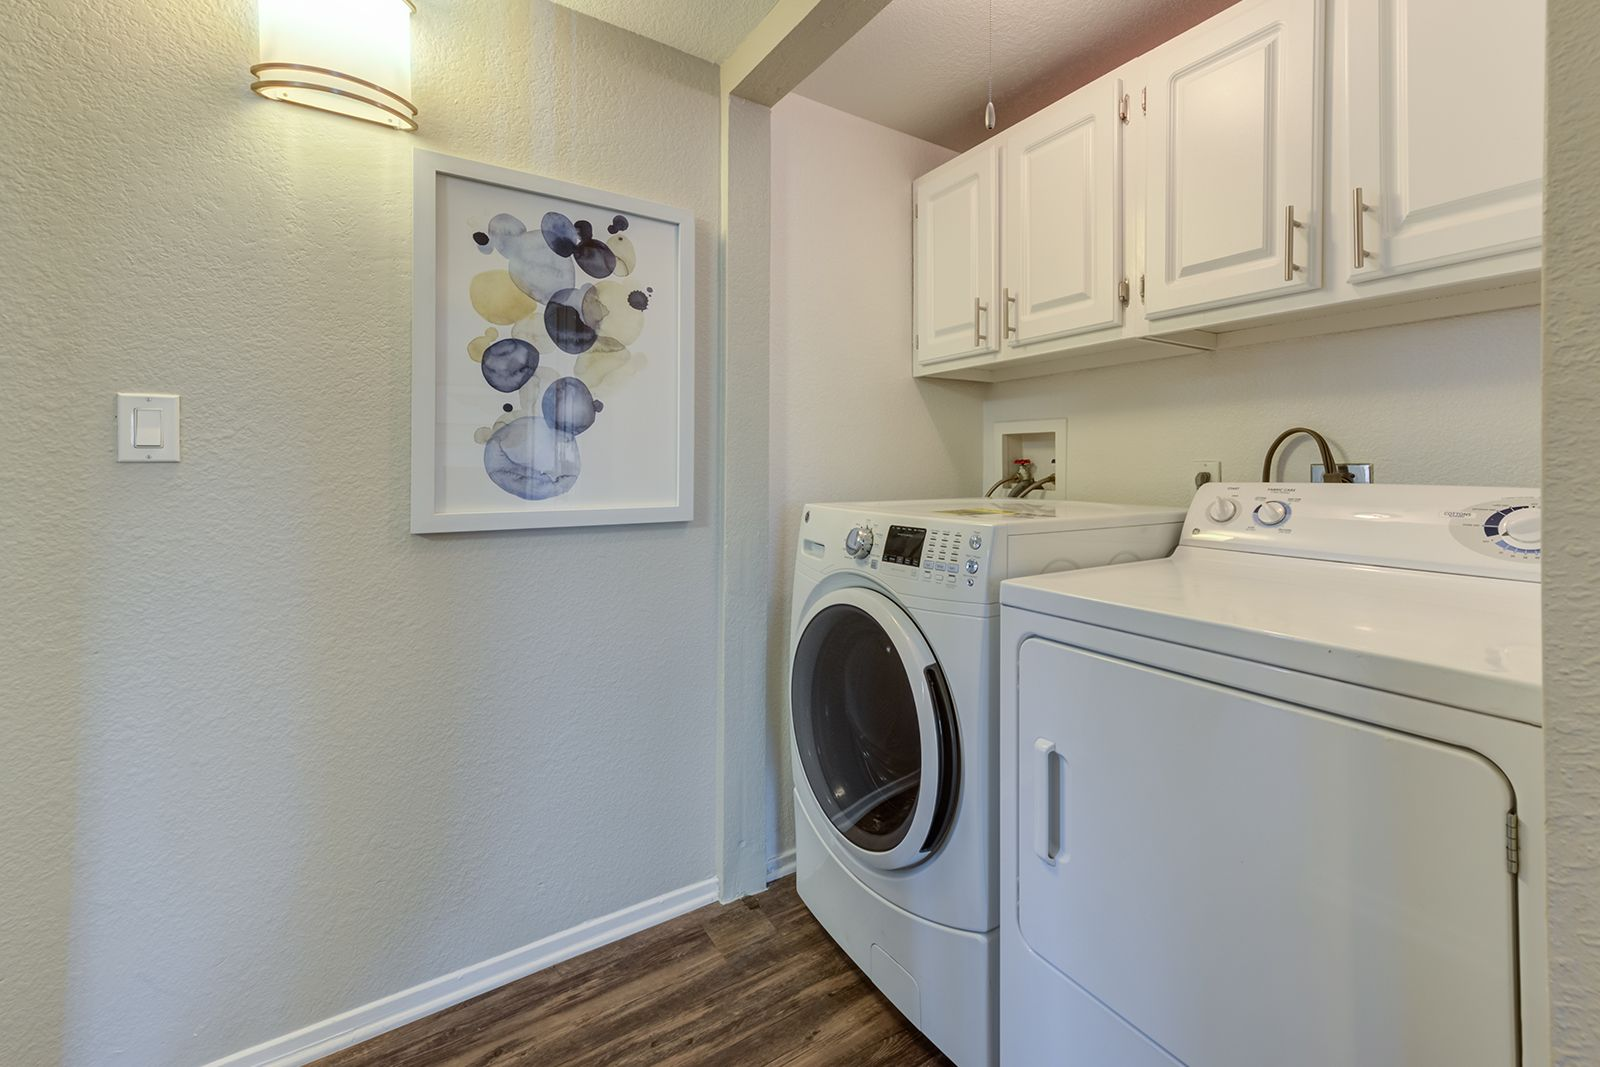 Our Homes Feature In Unit Washers And Dryers For Your Convenience Amenities Thebelaire Ca Apartments Findyourhome Home Apartment Home Appliances